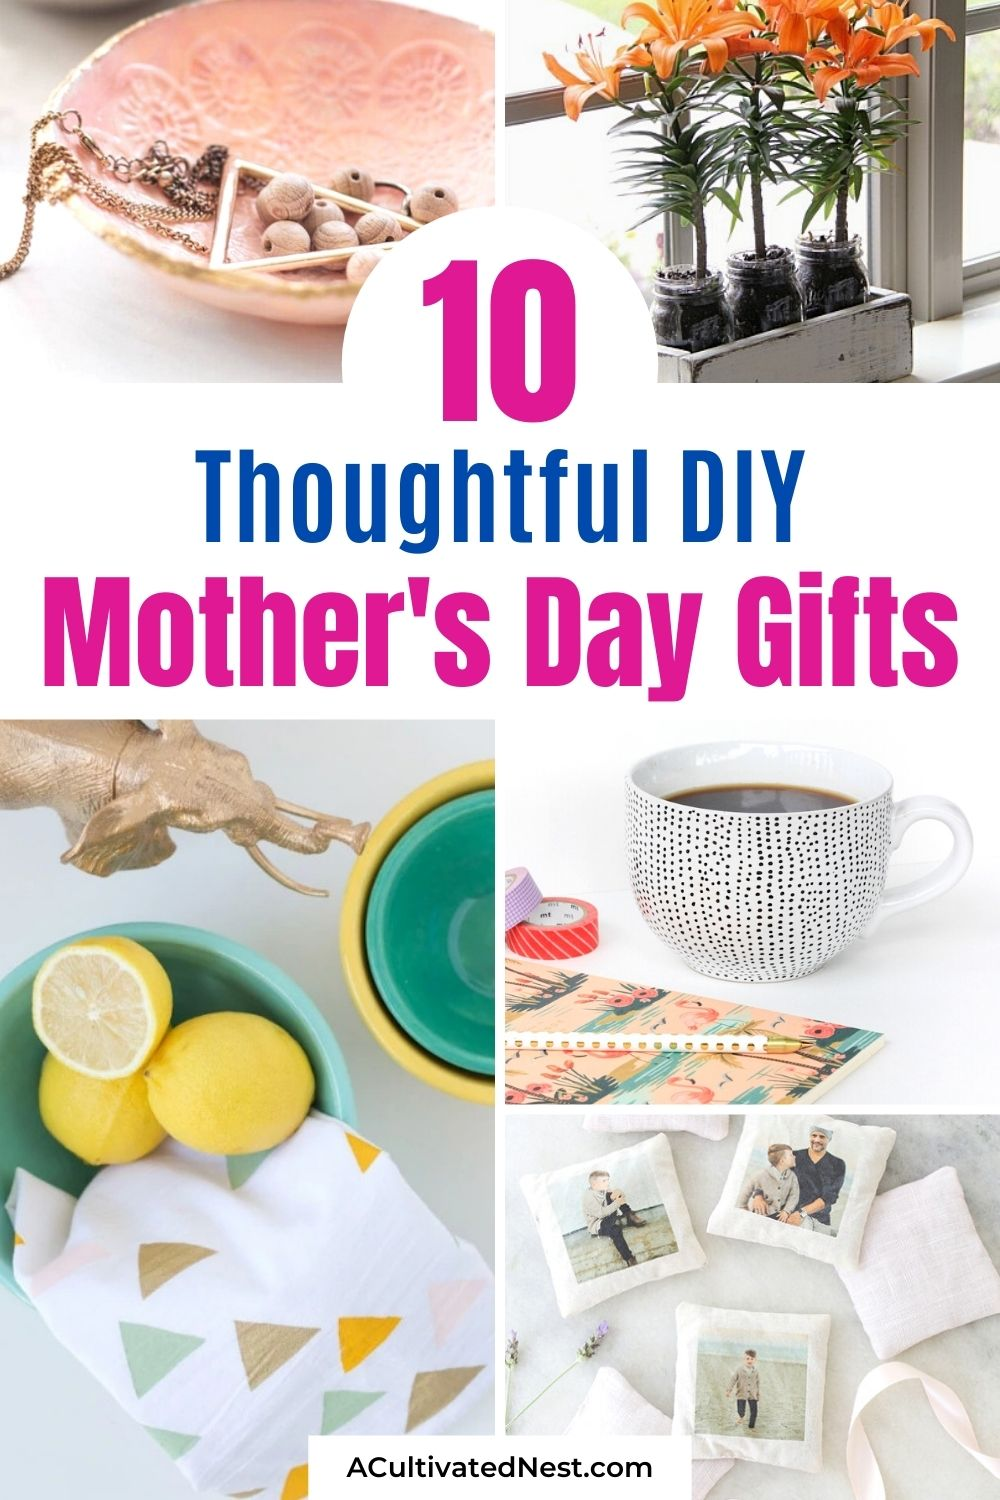 10 Awesome DIY Mother's Day Gifts- If you want to give Mom something she'll really love for Mother's Day this year, then you need to check out these awesome DIY Mother's Day gifts! | #diyGifts #homemadeGifts #mothersDay #mothersDayGifts #ACultivatedNest